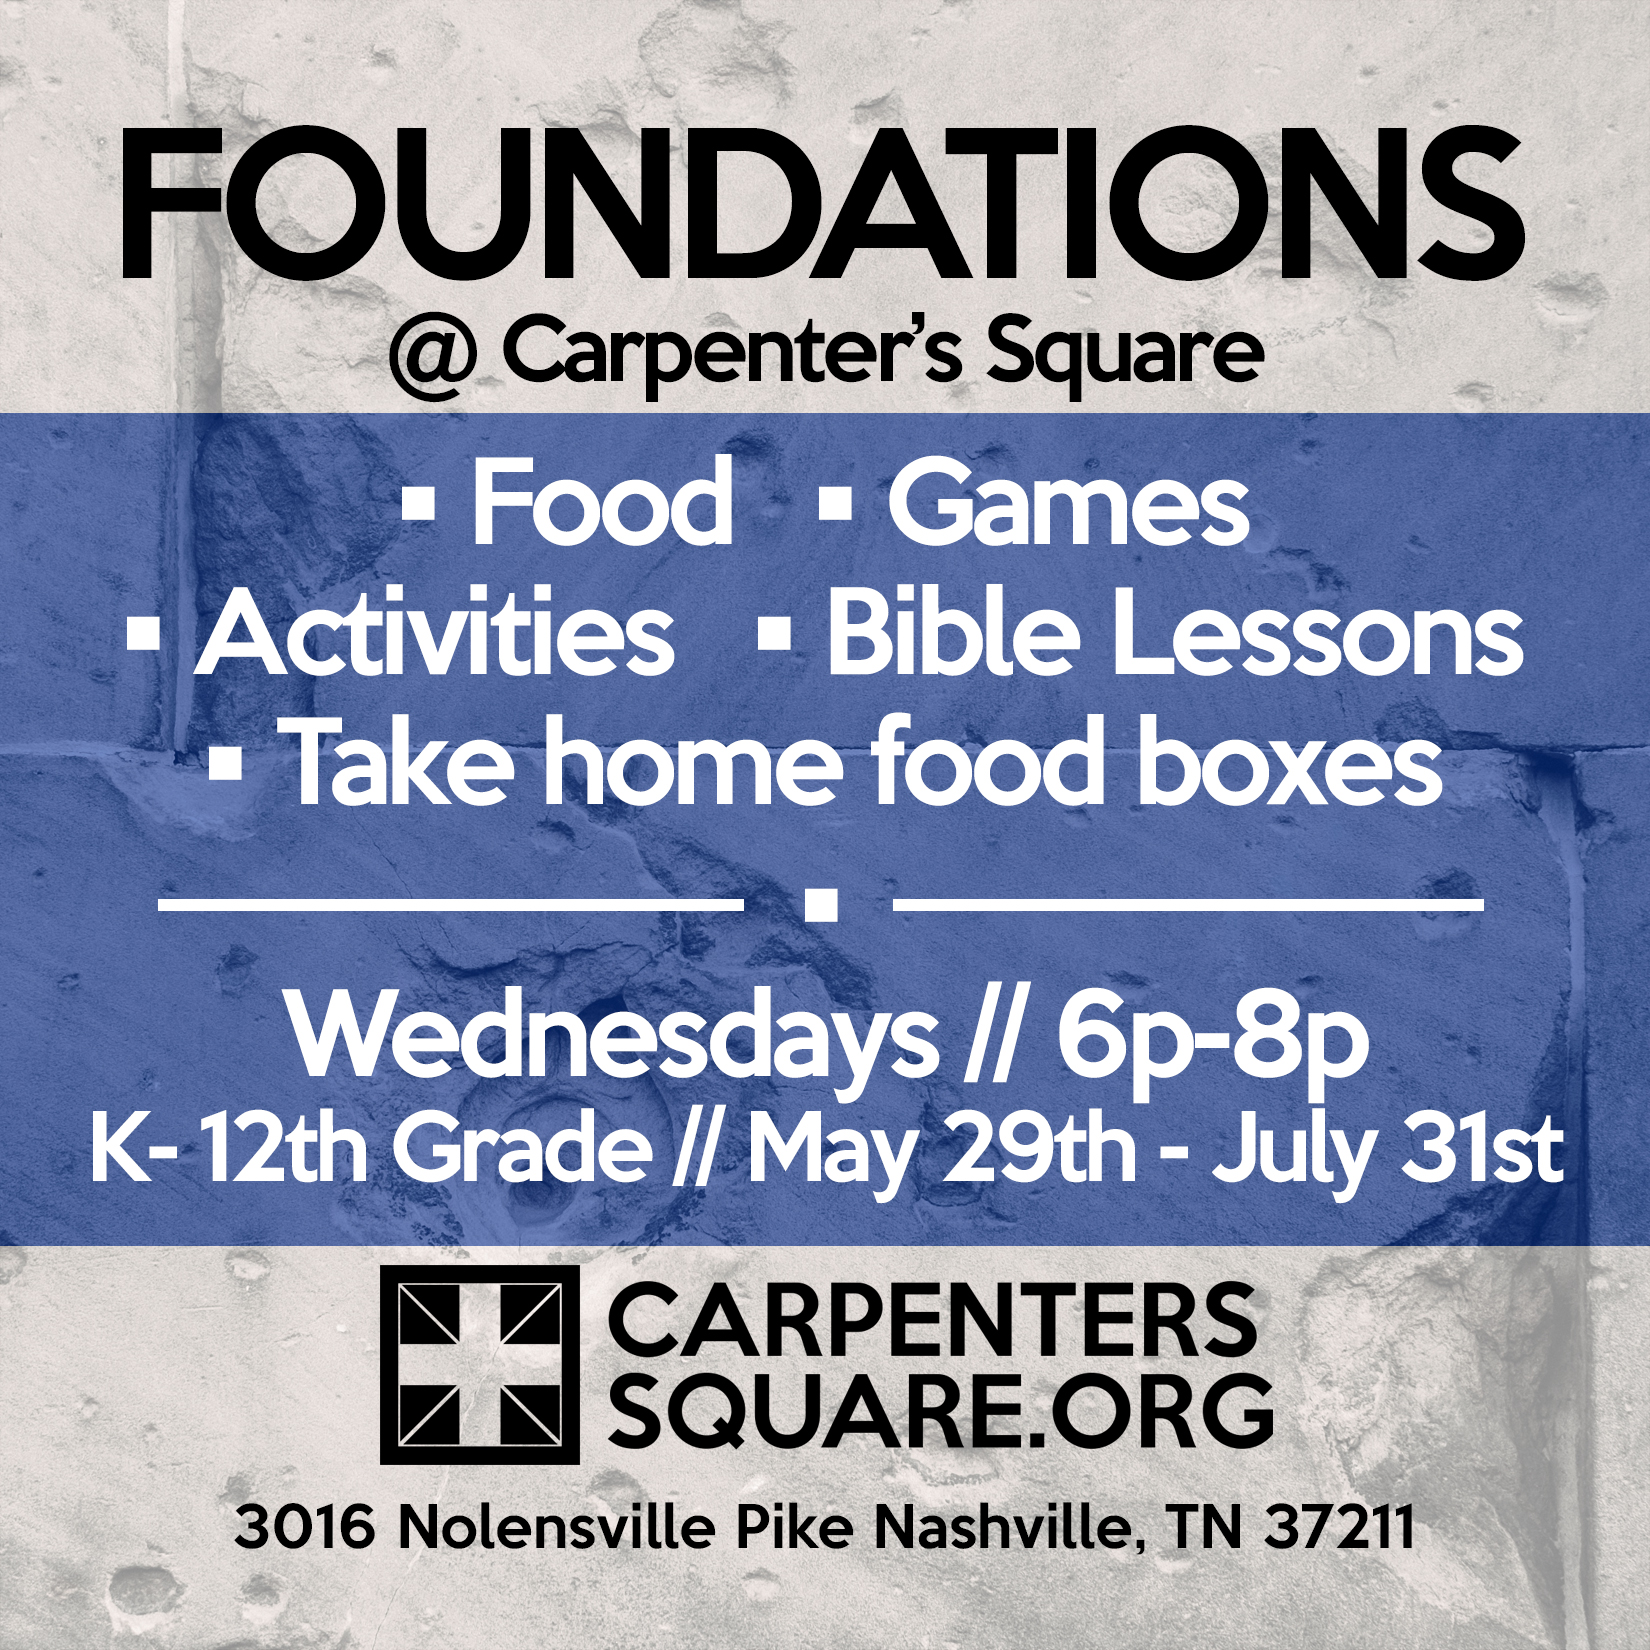 Foundations - Join us every Wednesday from 6p-8p starting May 29th for our Foundations program. Foundations is a program for youth K-12th grade. We will have food, games, activities, Bible lessons and more! Come on out!If you would like to sponsor pizza one evening during the summer please let us know!